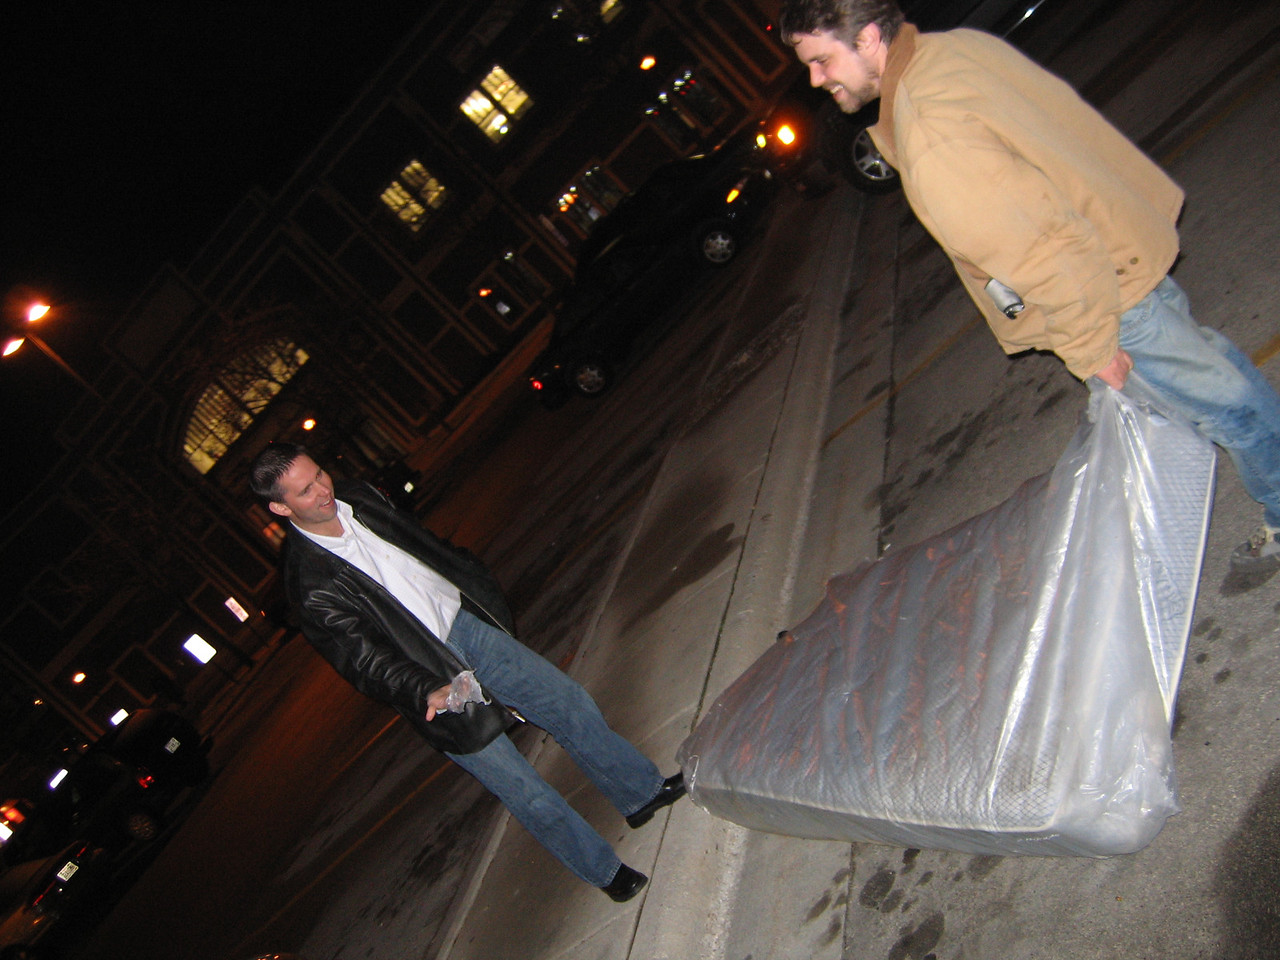 On the way back, we found a twin mattress on the road (still in its plastic seal.)